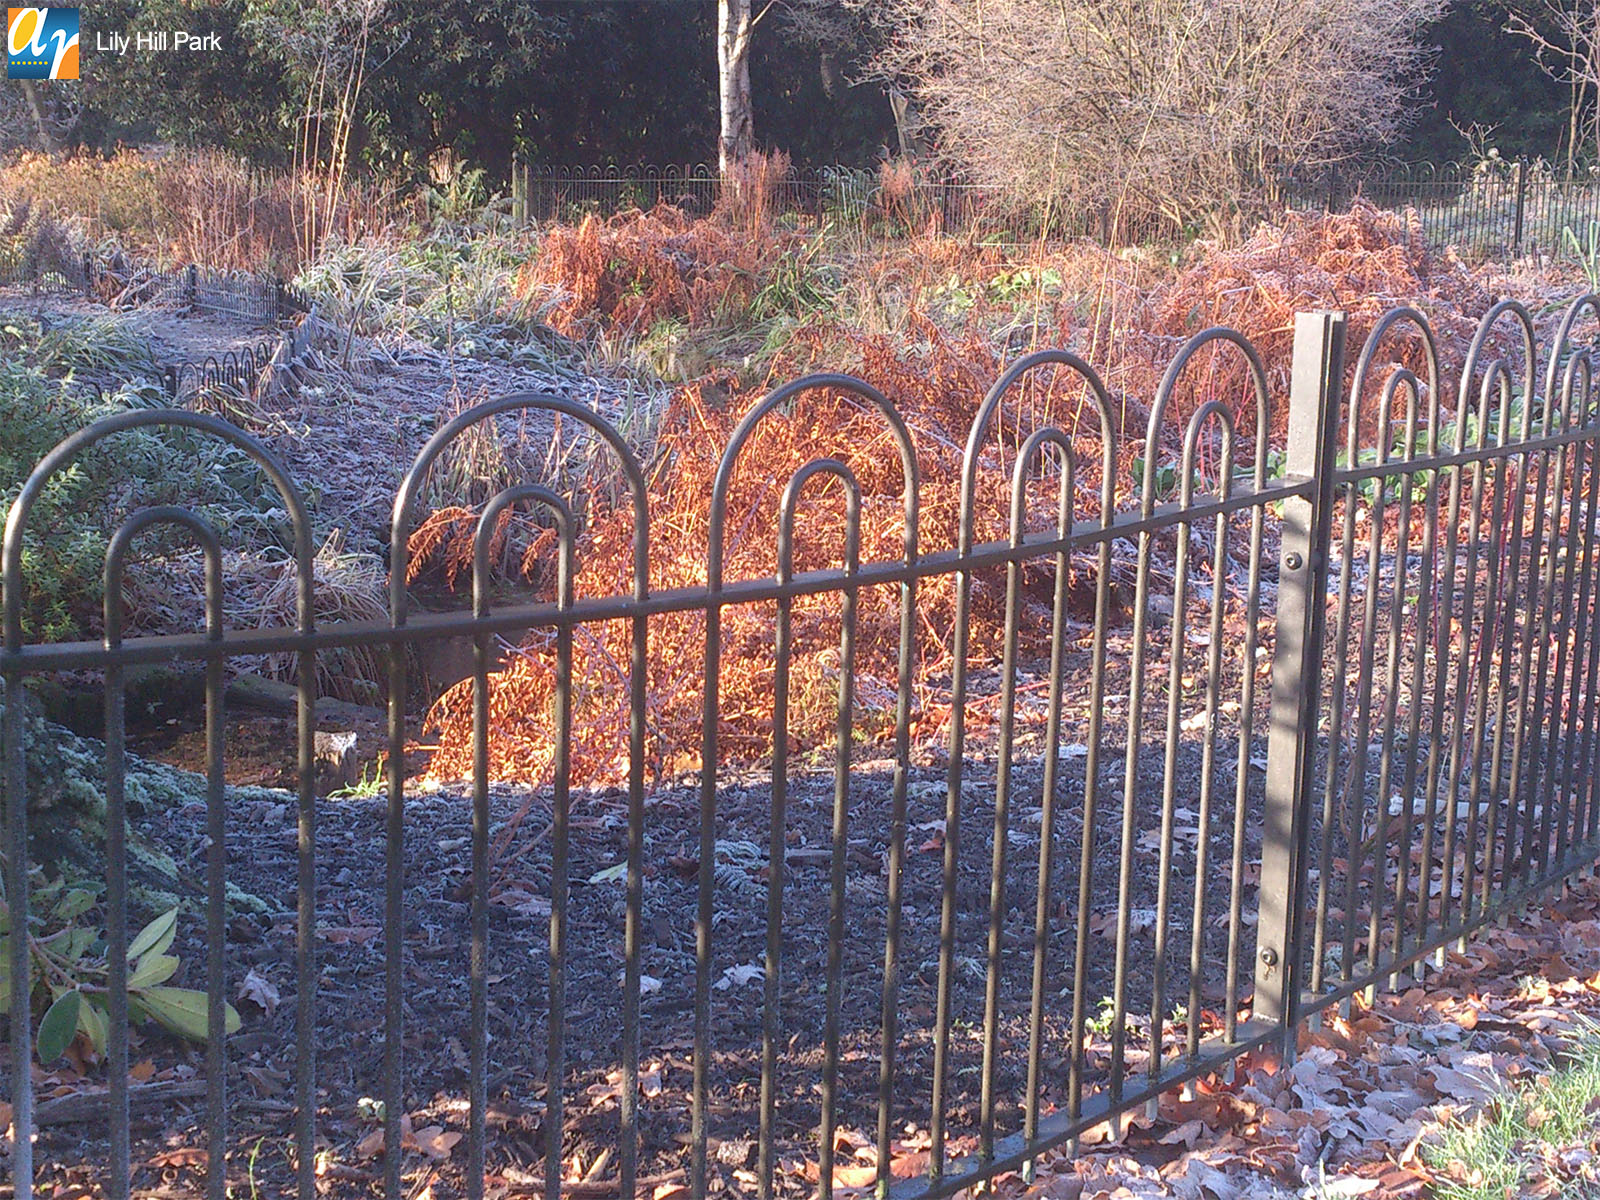 Lily Hill Park Holinwell bow top railings